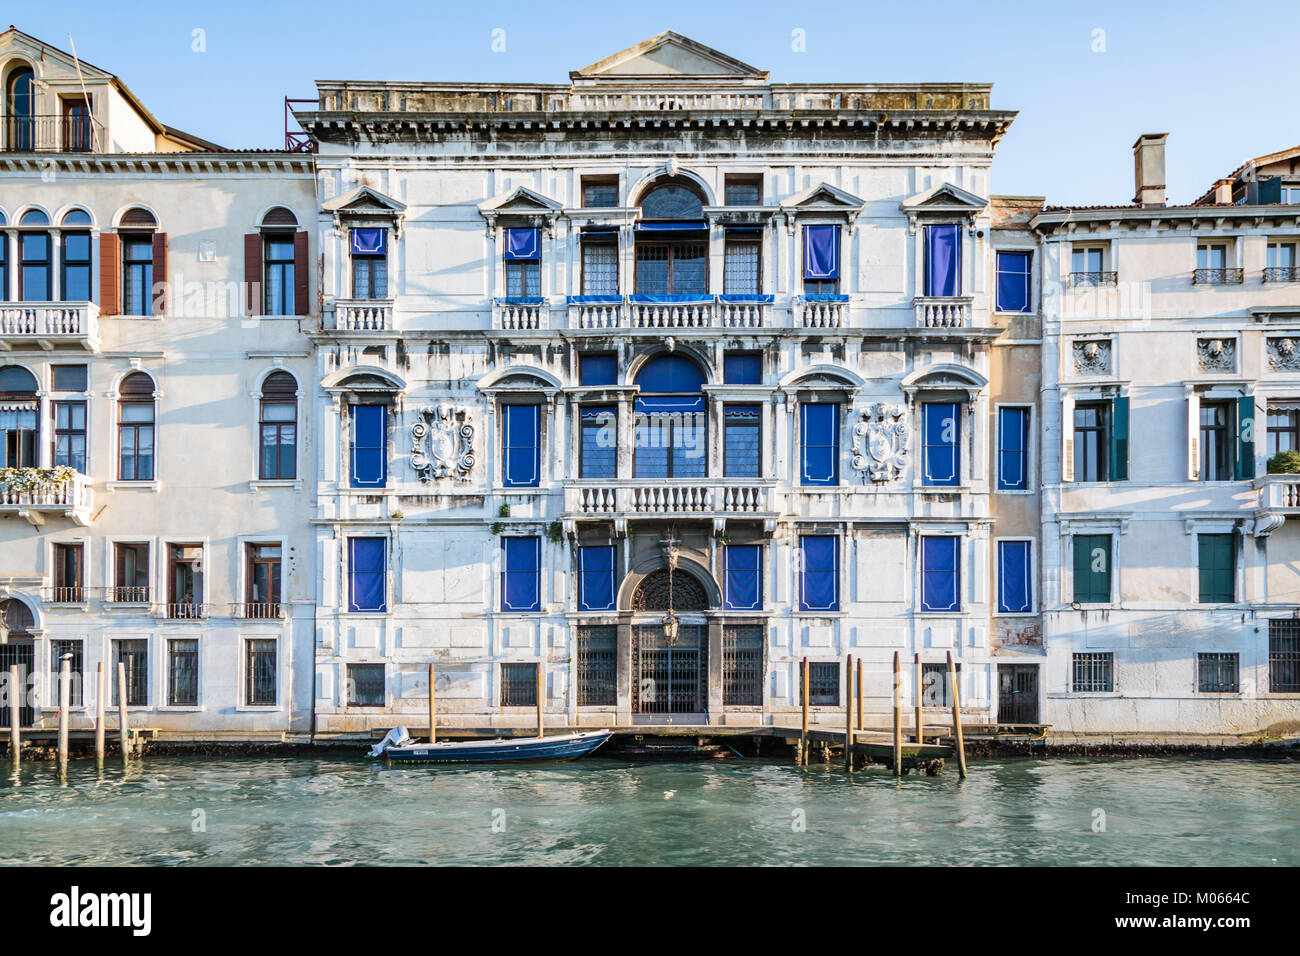 Buildings boats and gondolas along the Grand Canal waterway in Veneto, Venice, Italy, Europe, - Stock Image